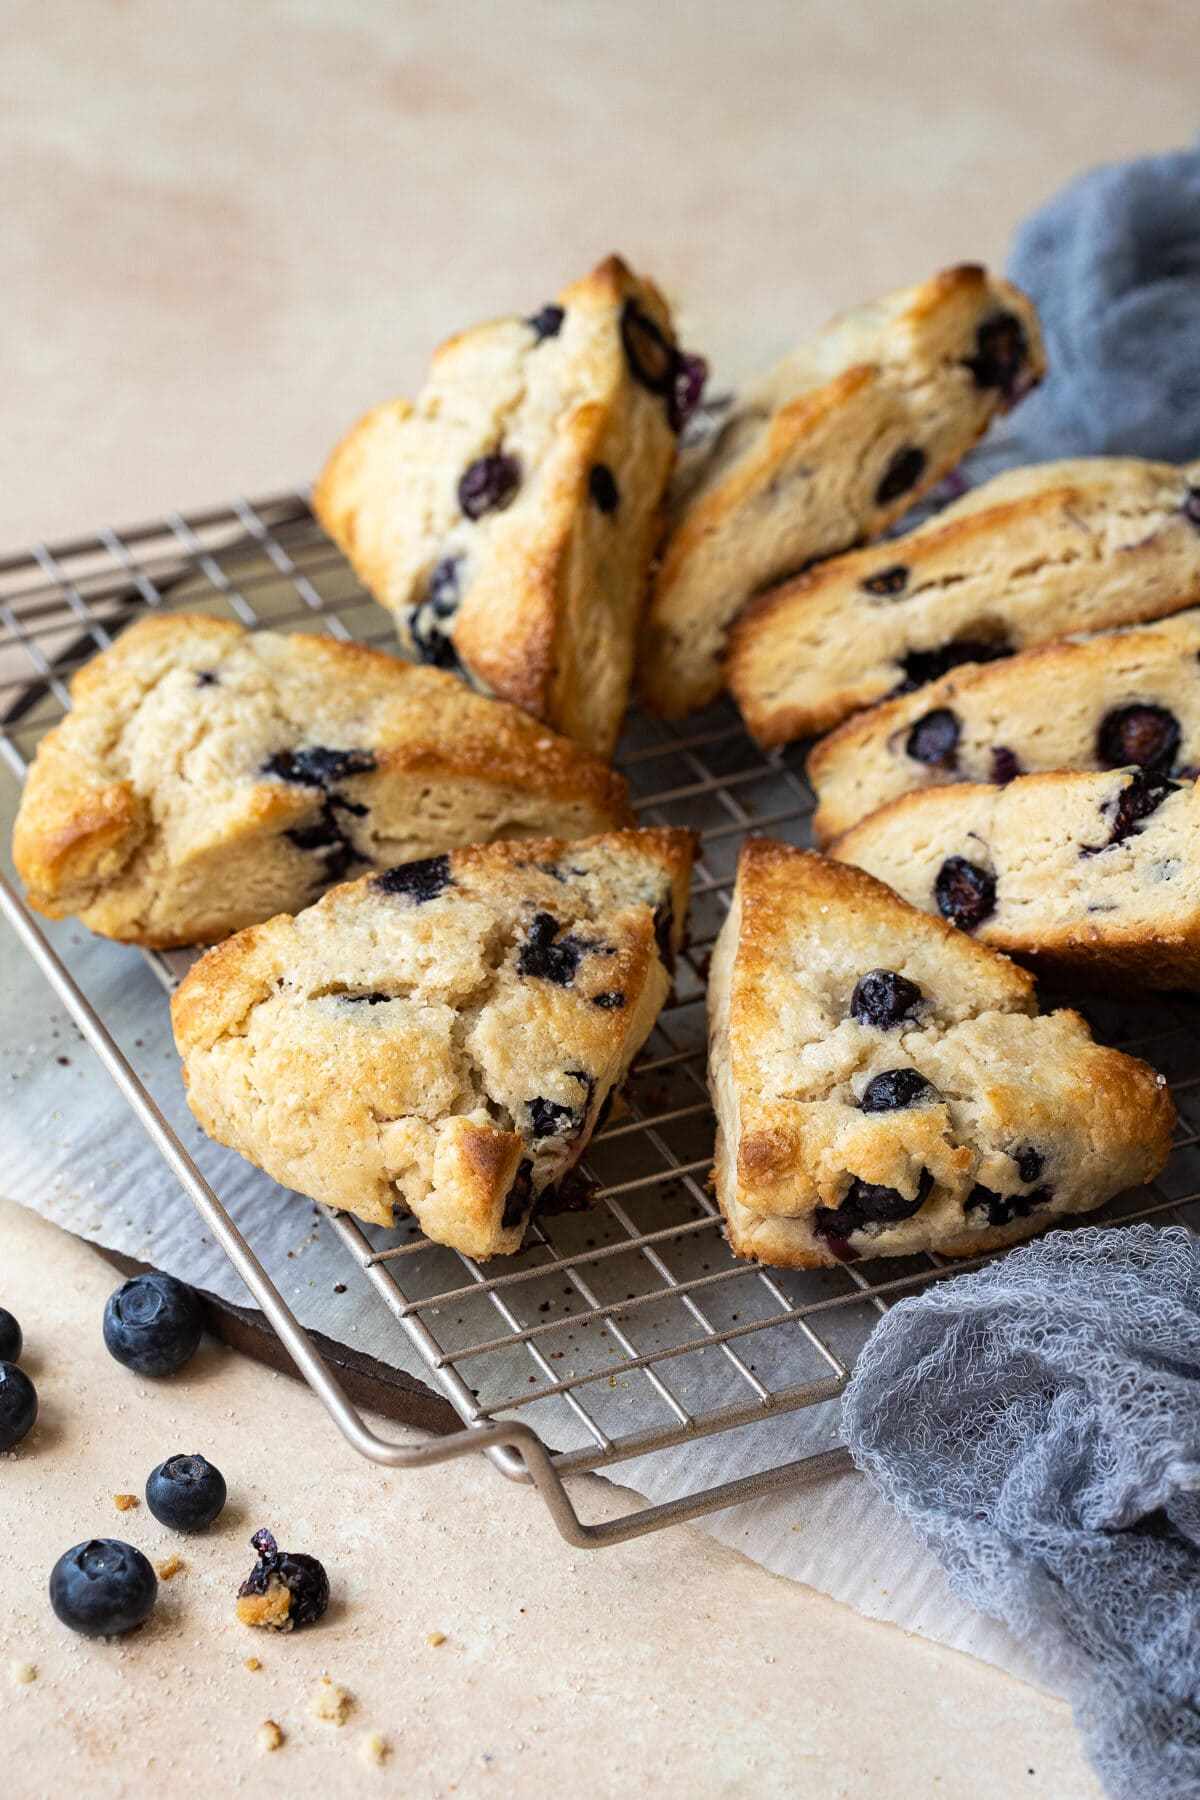 Blueberry scones arranged circularly on a wire rack.